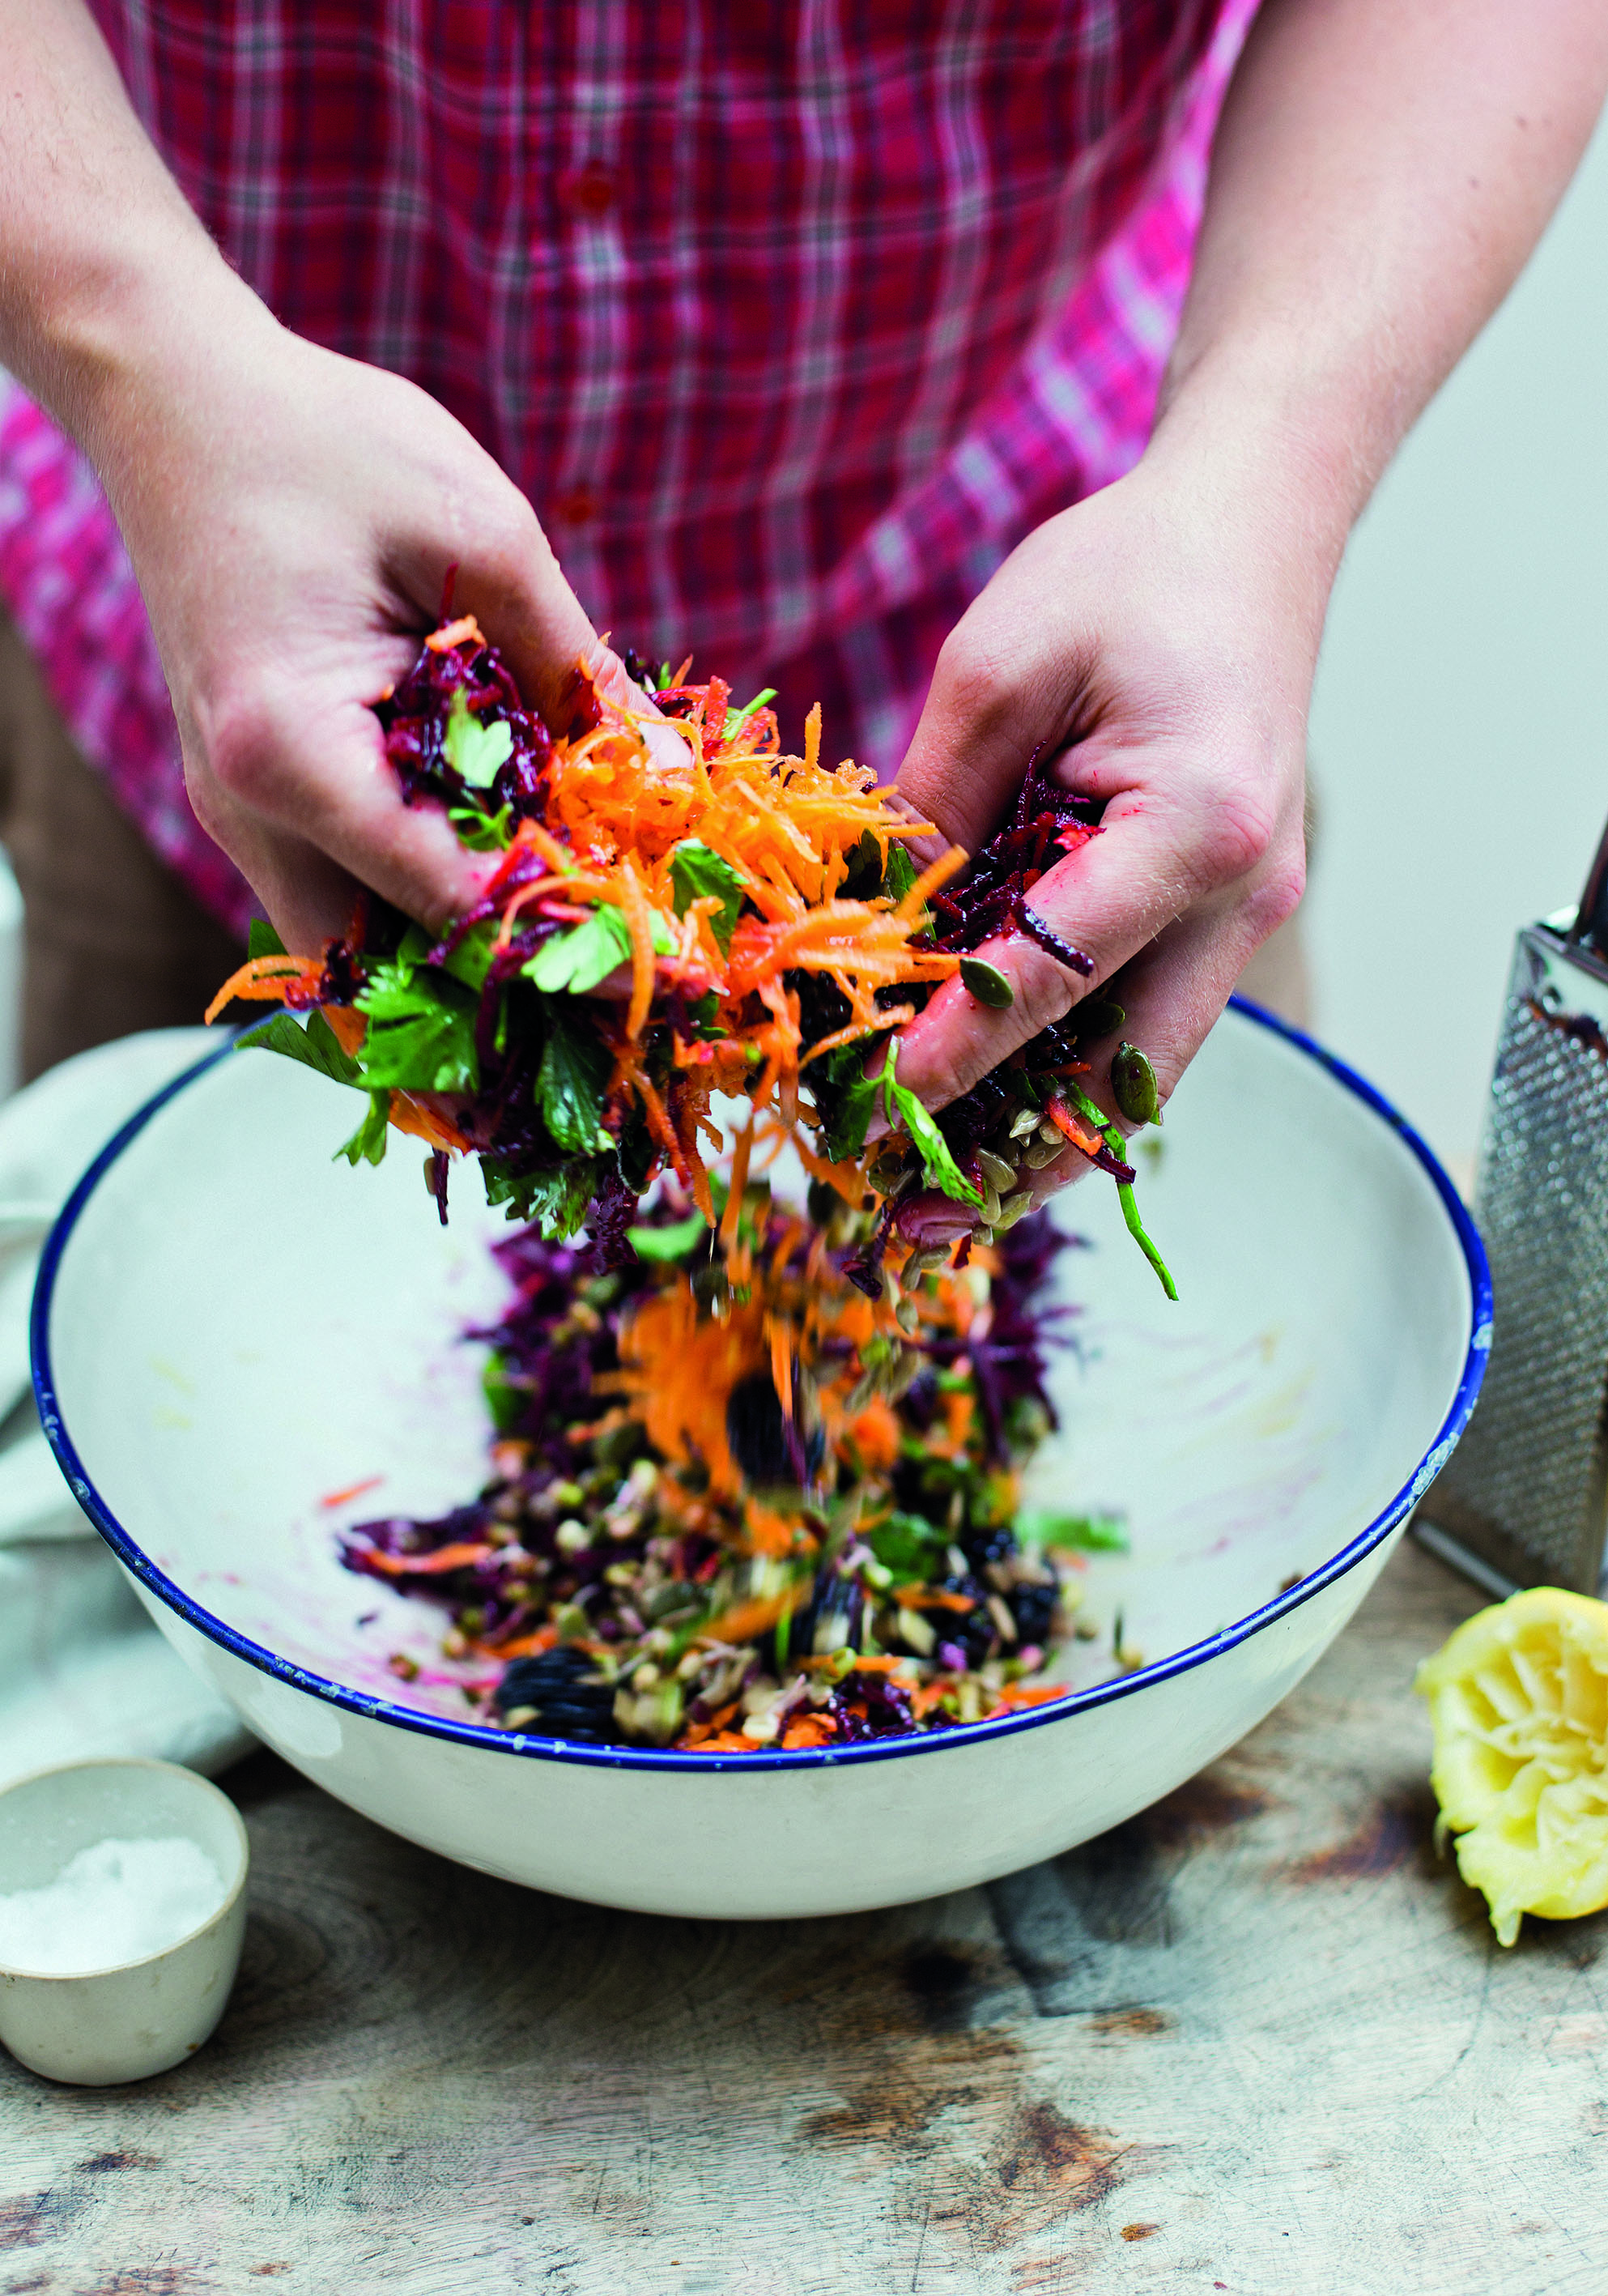 Autumn Slaw with Kale, Beets, Blackberries & More